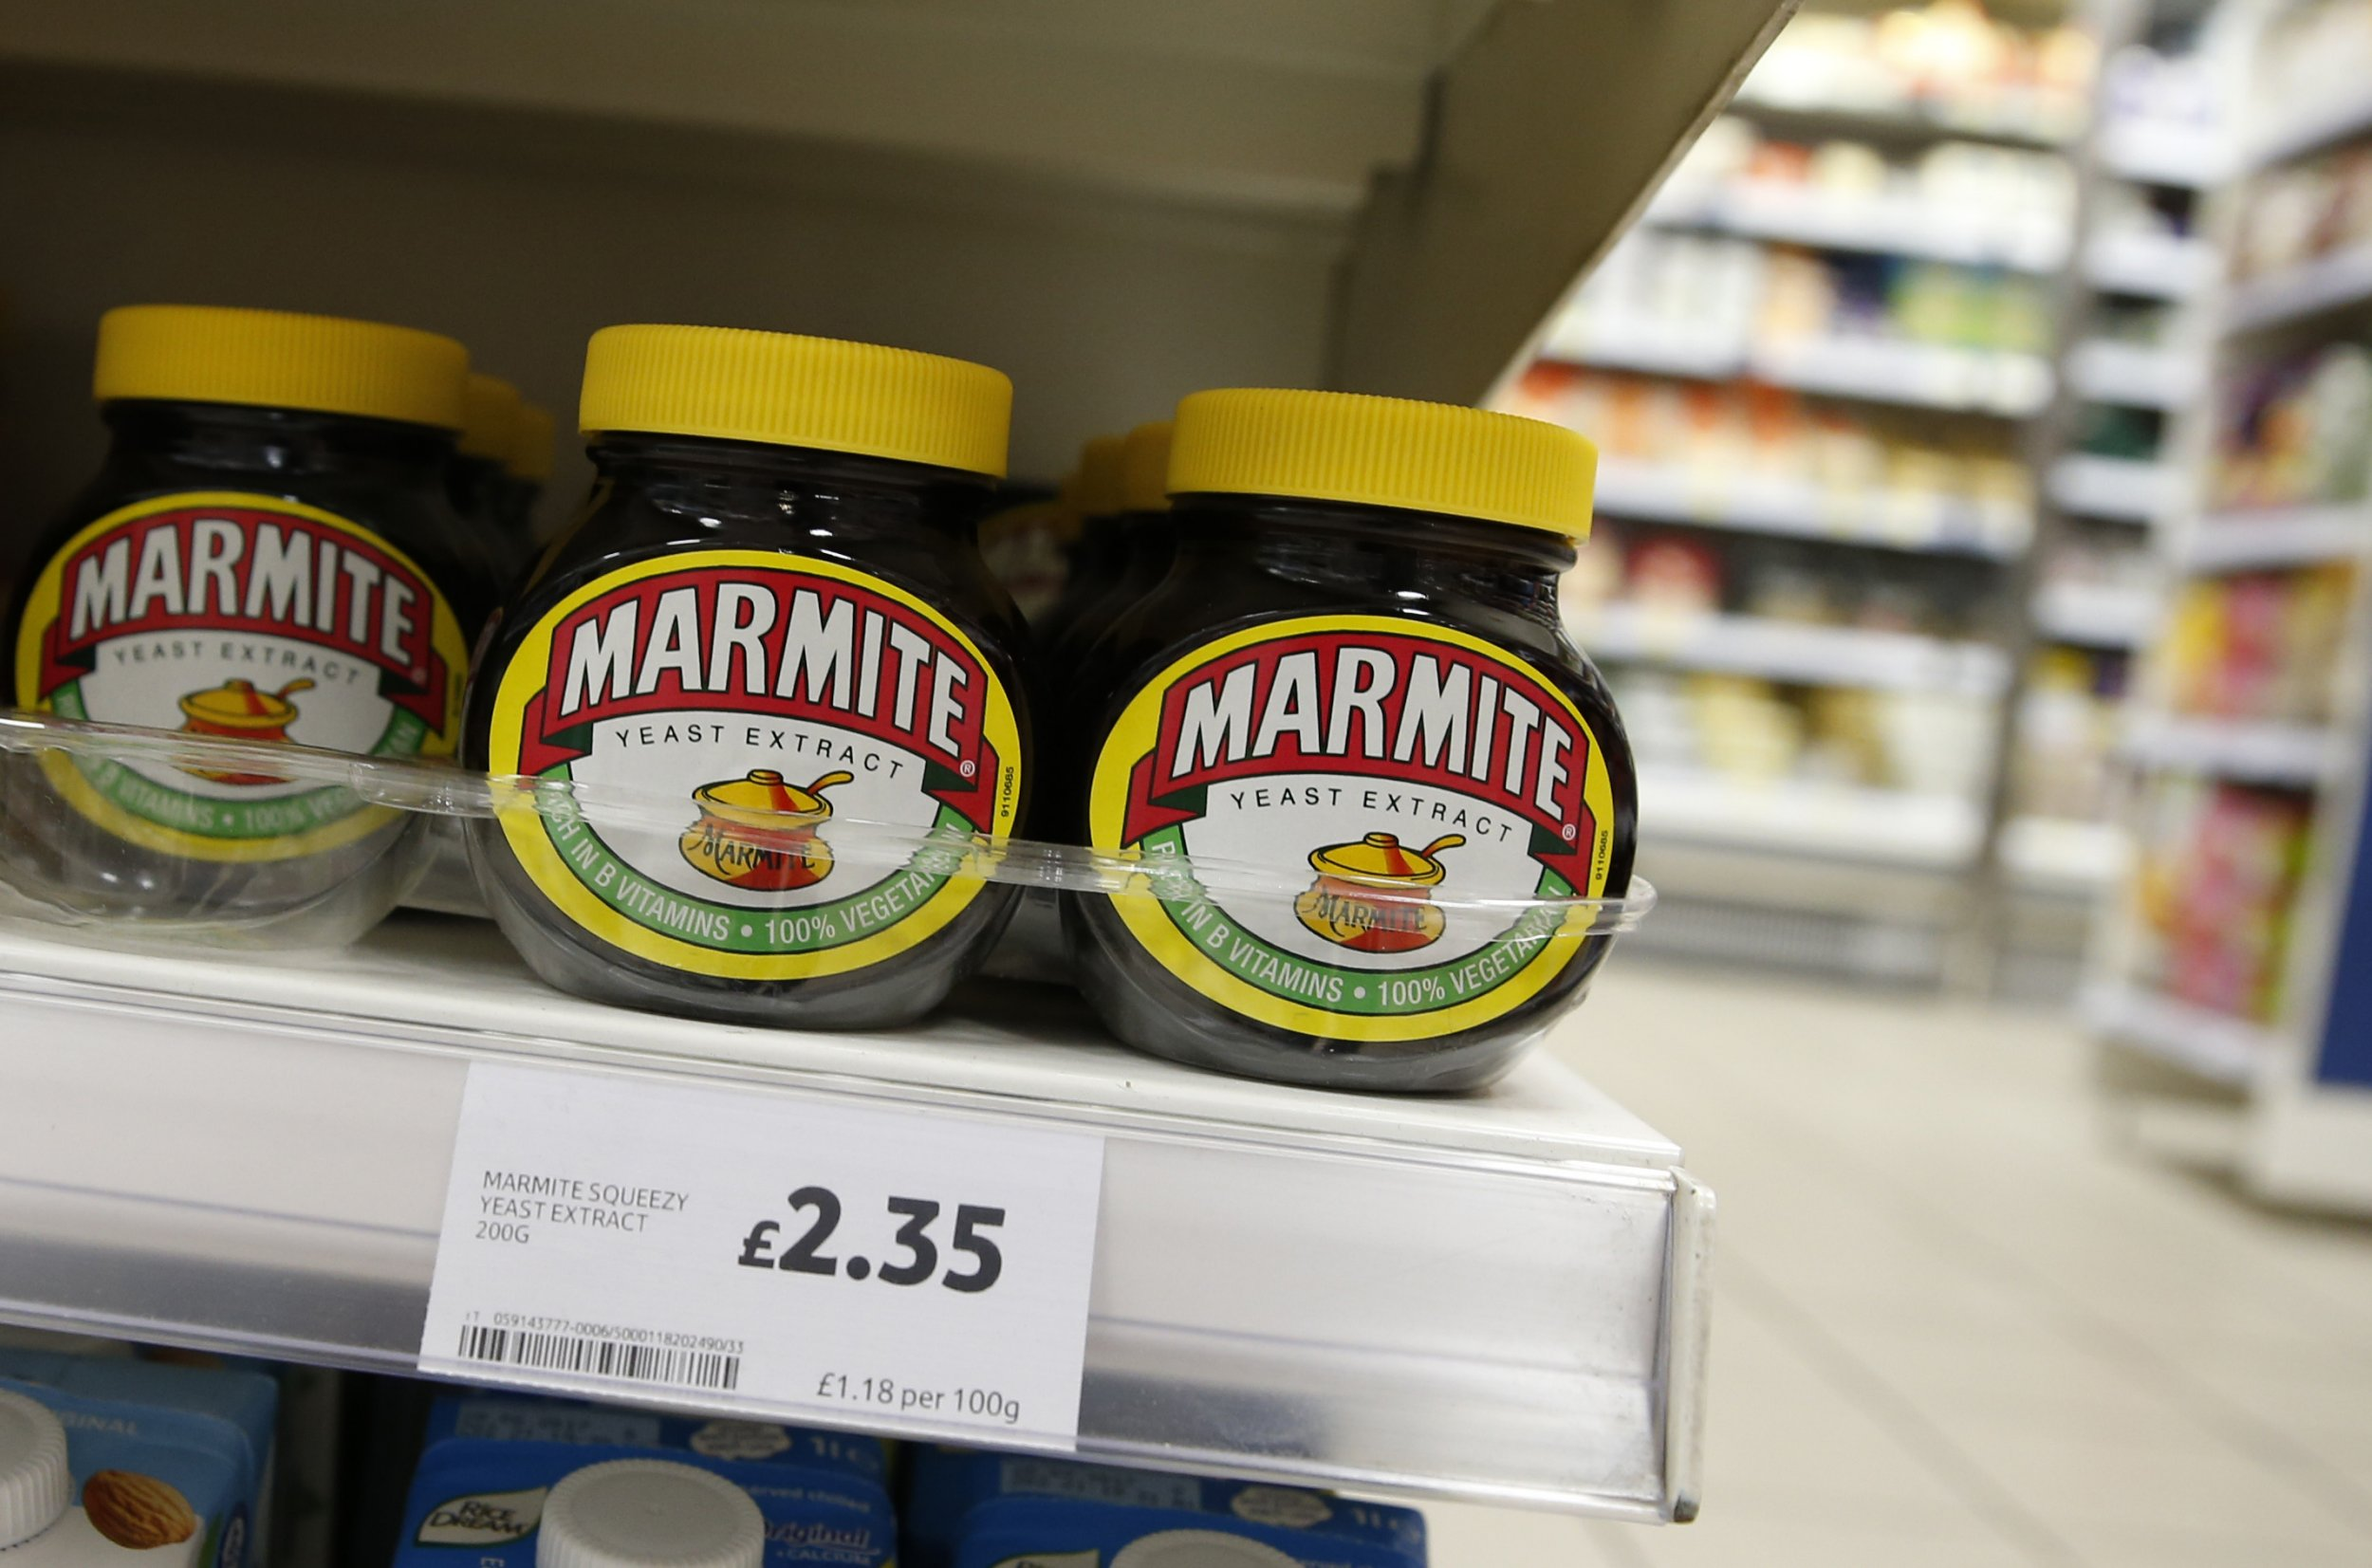 Are other retailers going to stop supplying Unilever?